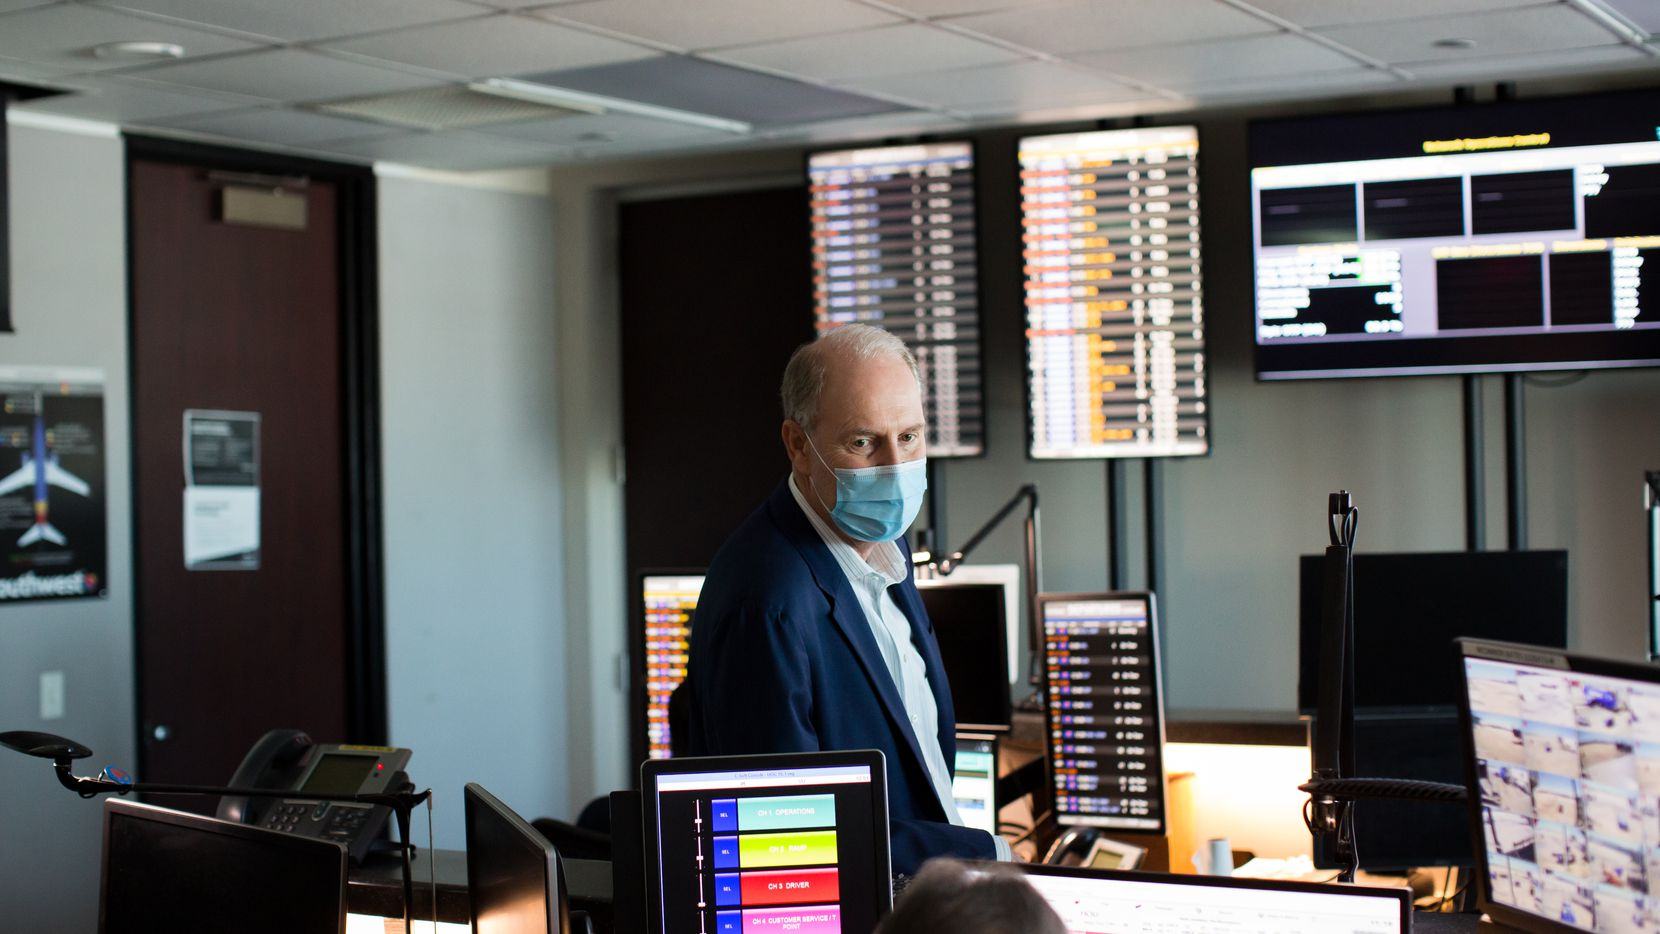 Southwest Airlines CEO Gary Kelly visited the company's operations center at Houston Hobby Airport in June 2020.